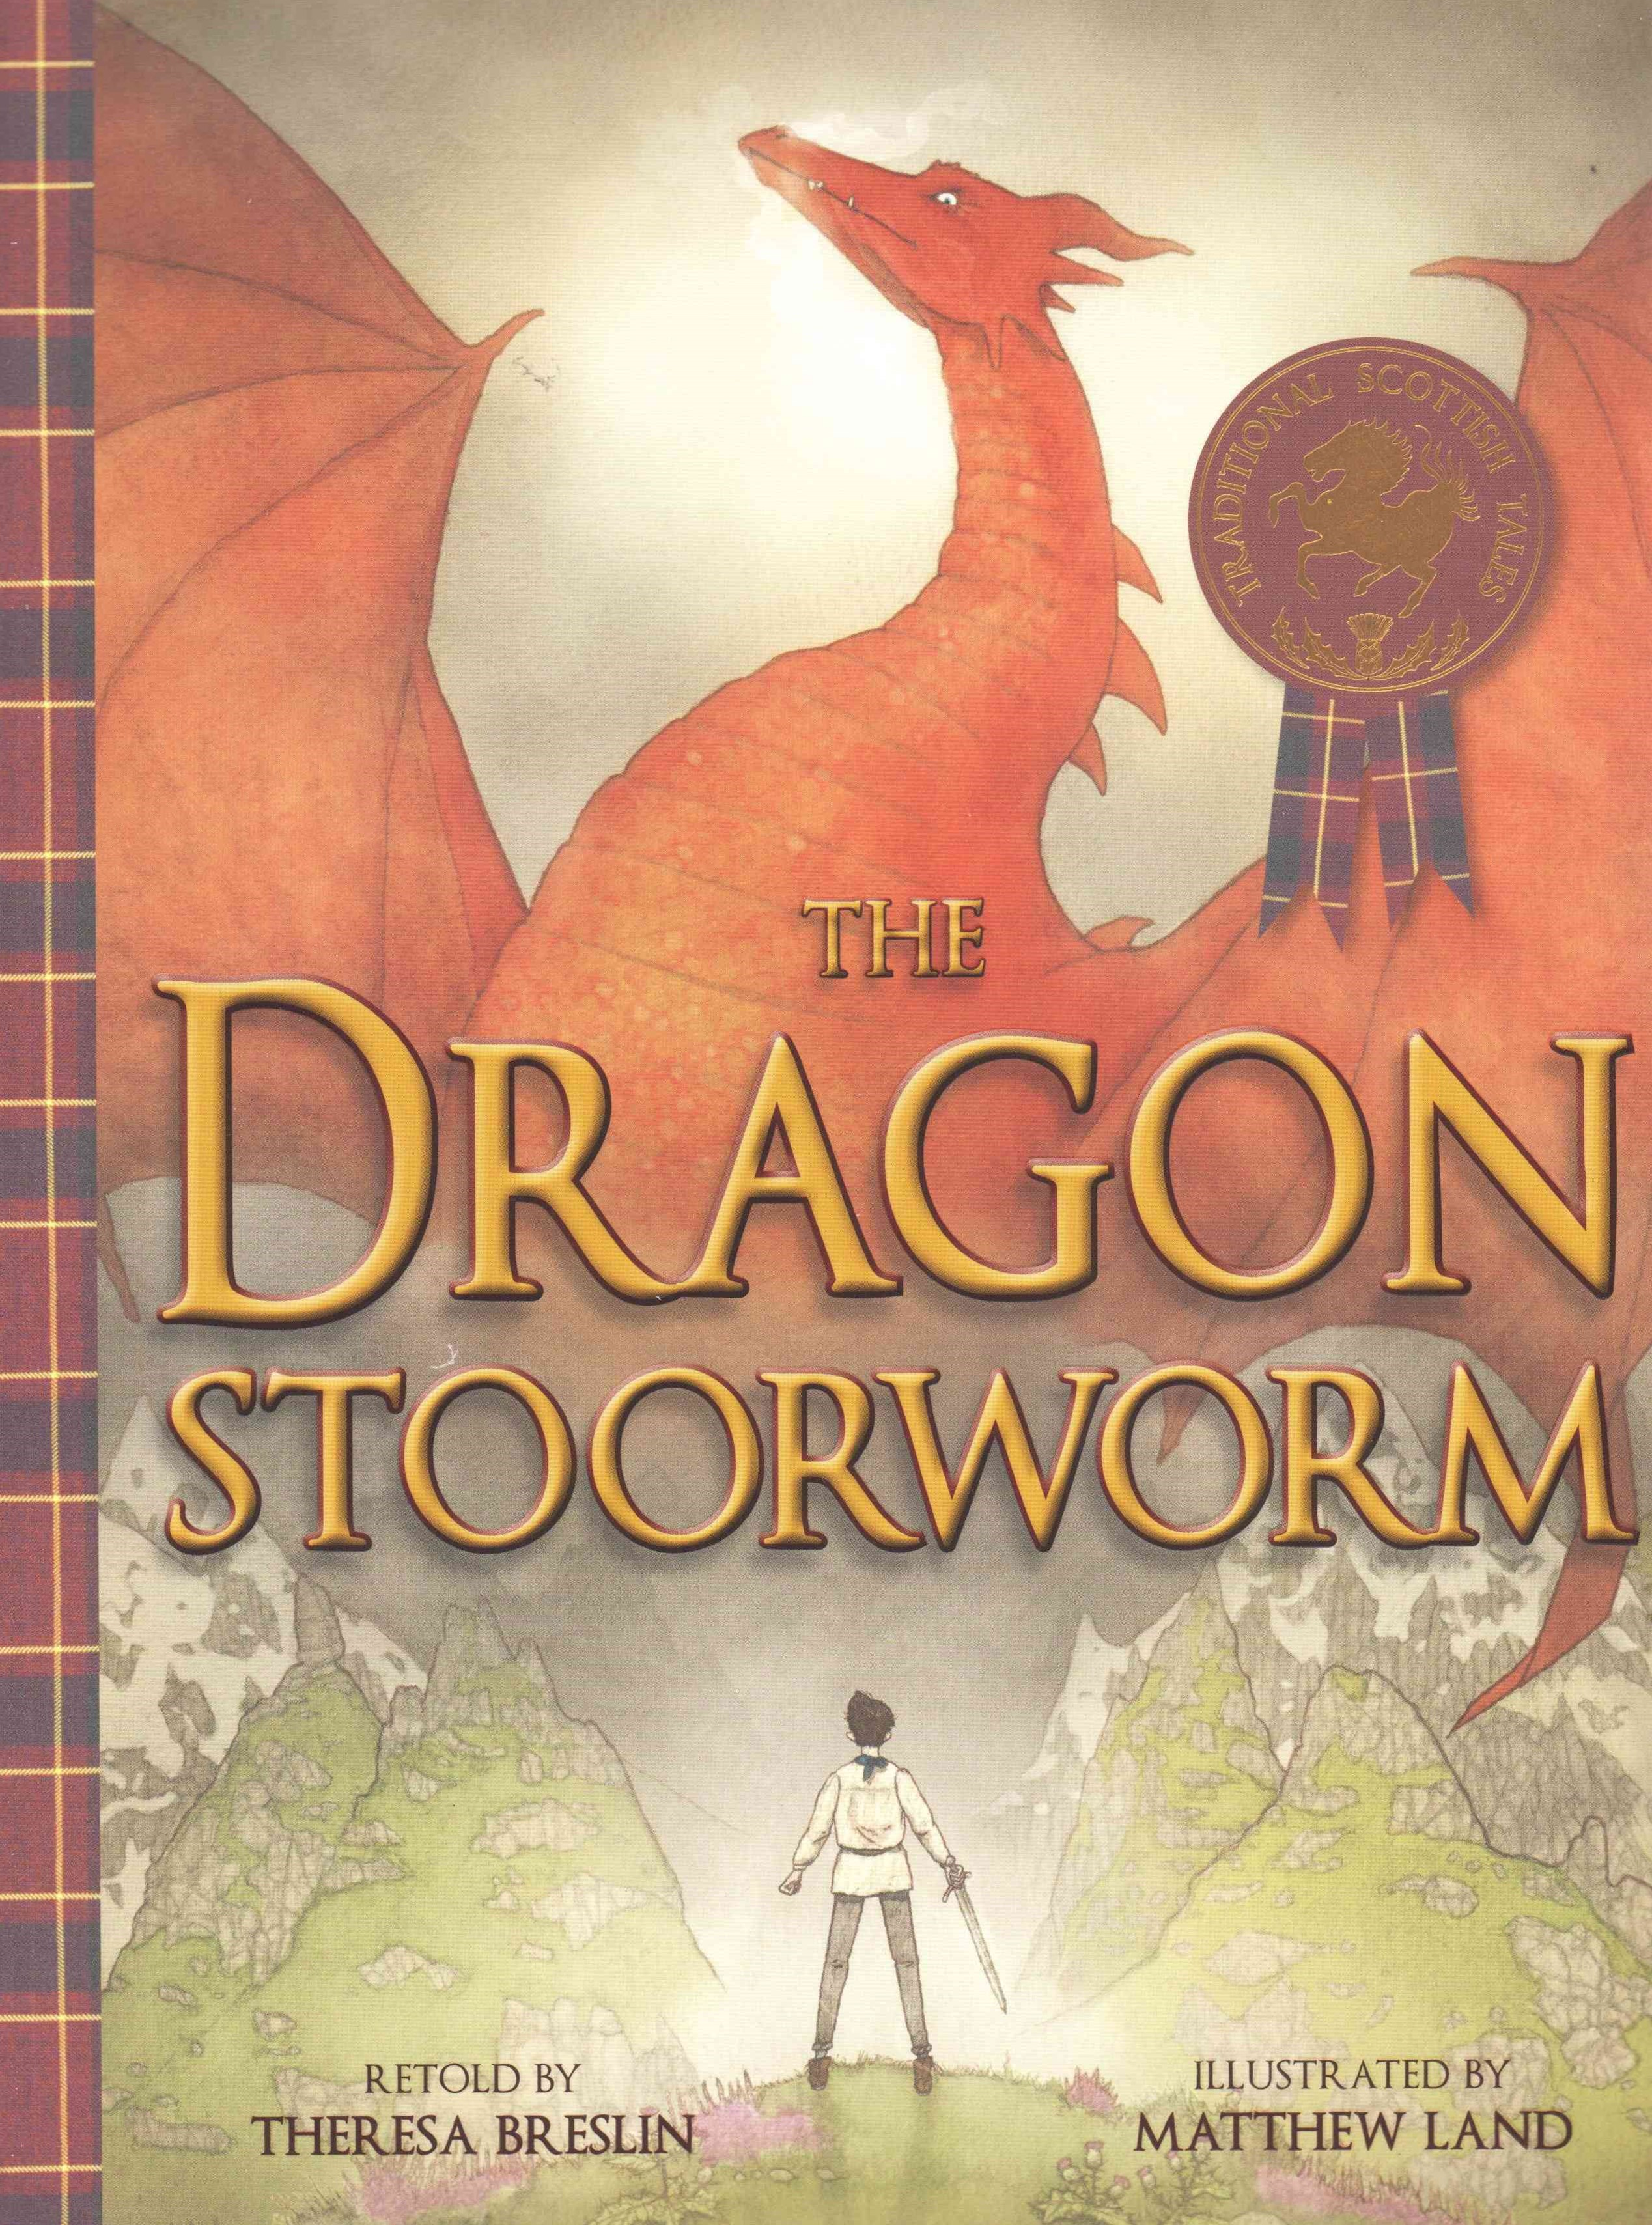 The Dragon Stoorworm